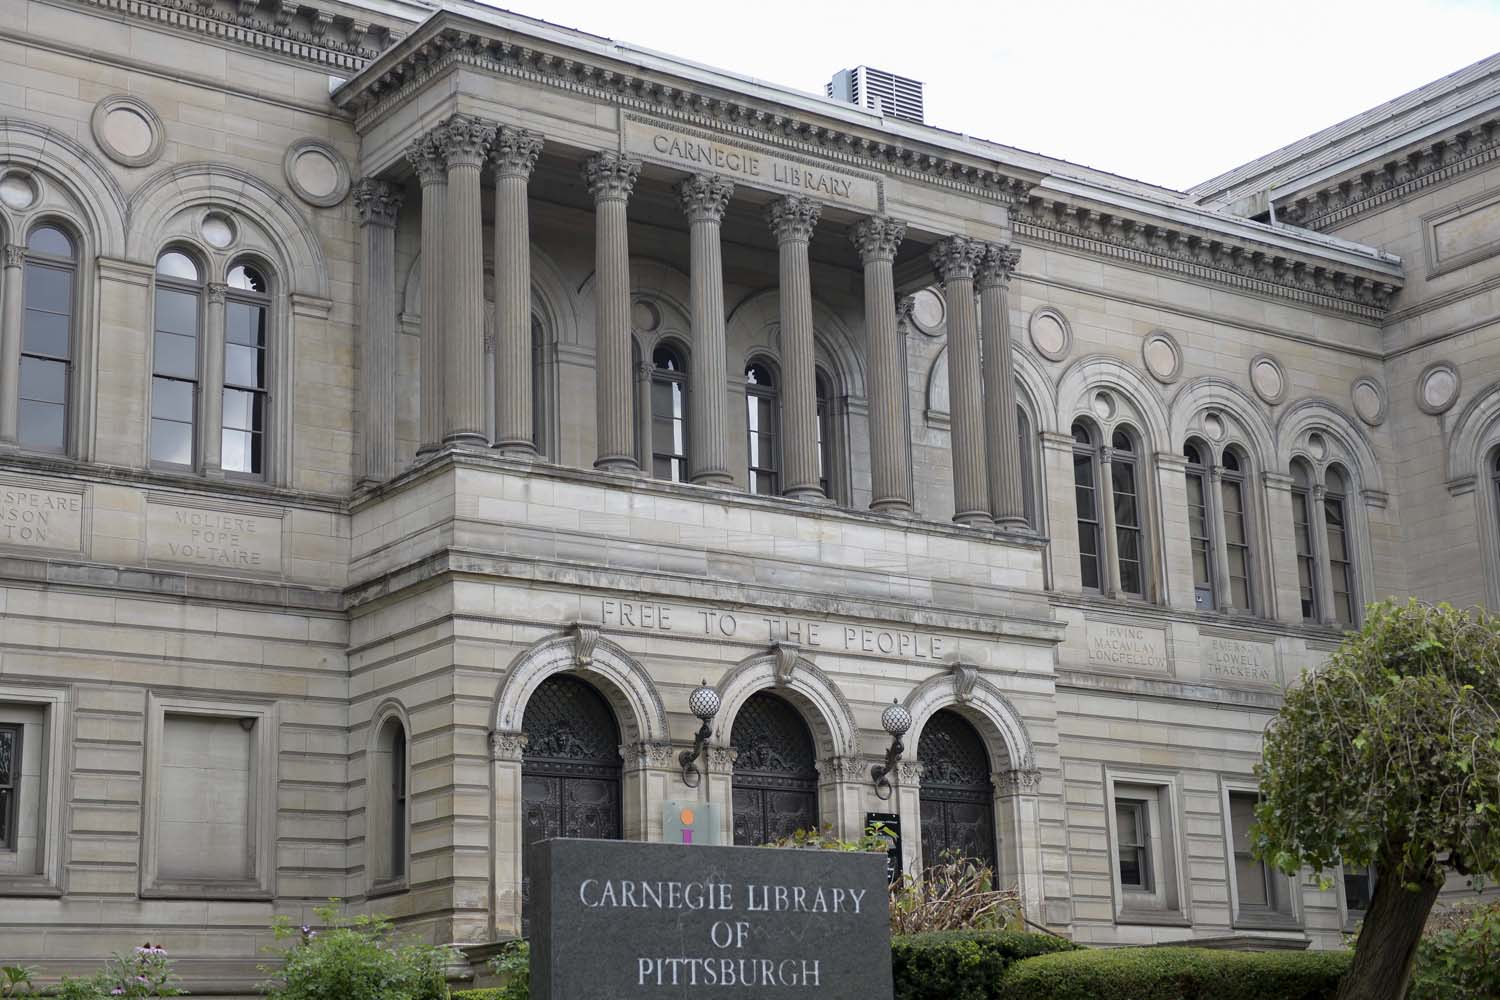 Carnegie Library workers voted on August 25 to form a union.